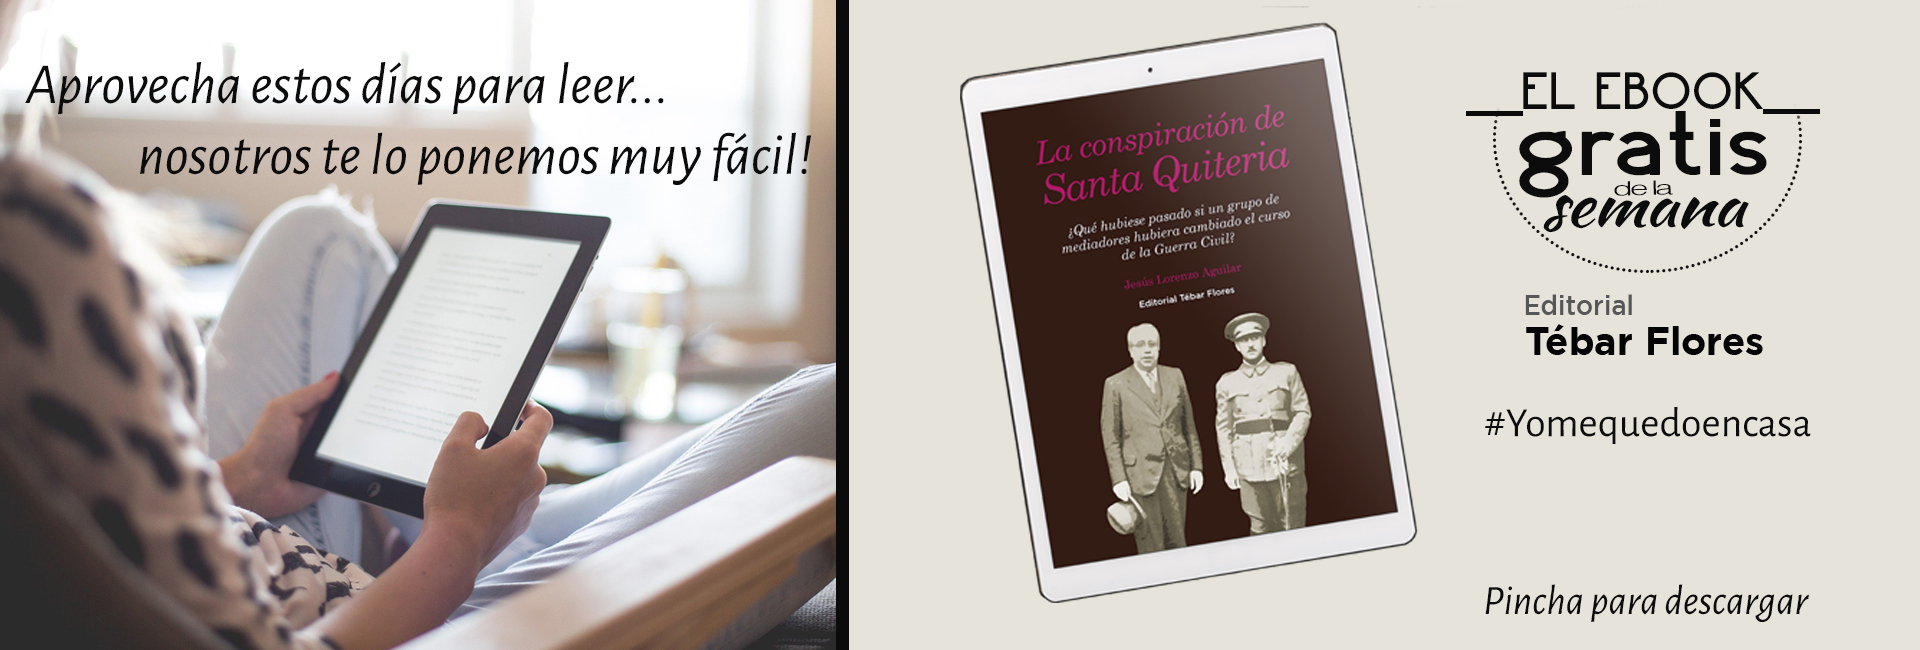 ebook gratis de la semana, descarga